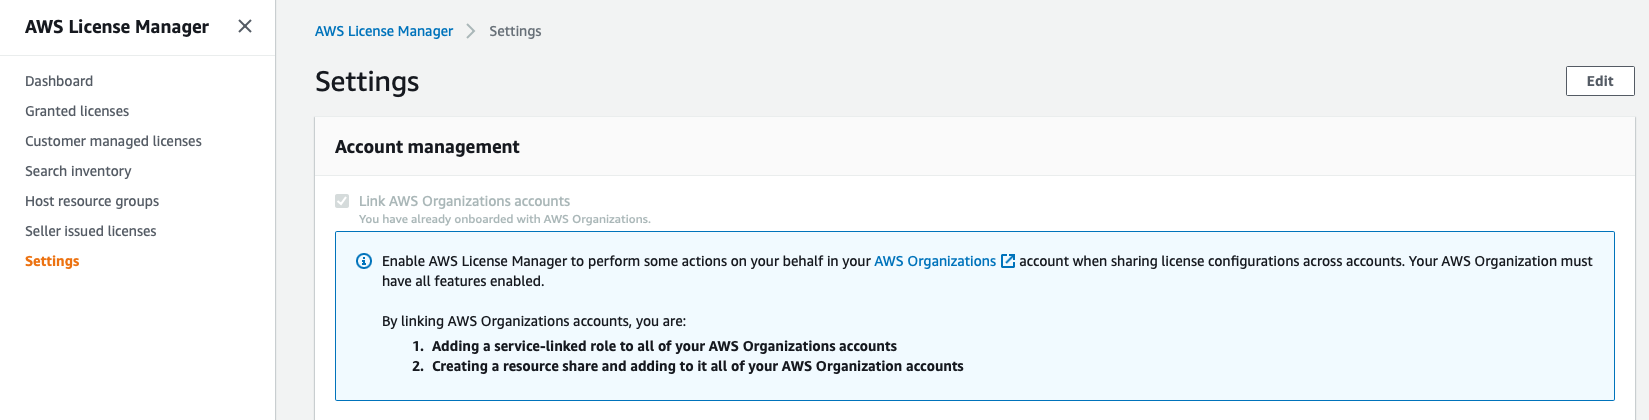 On the Settings page, under Account management, the Link AWS Organizations accounts checkbox is selected.